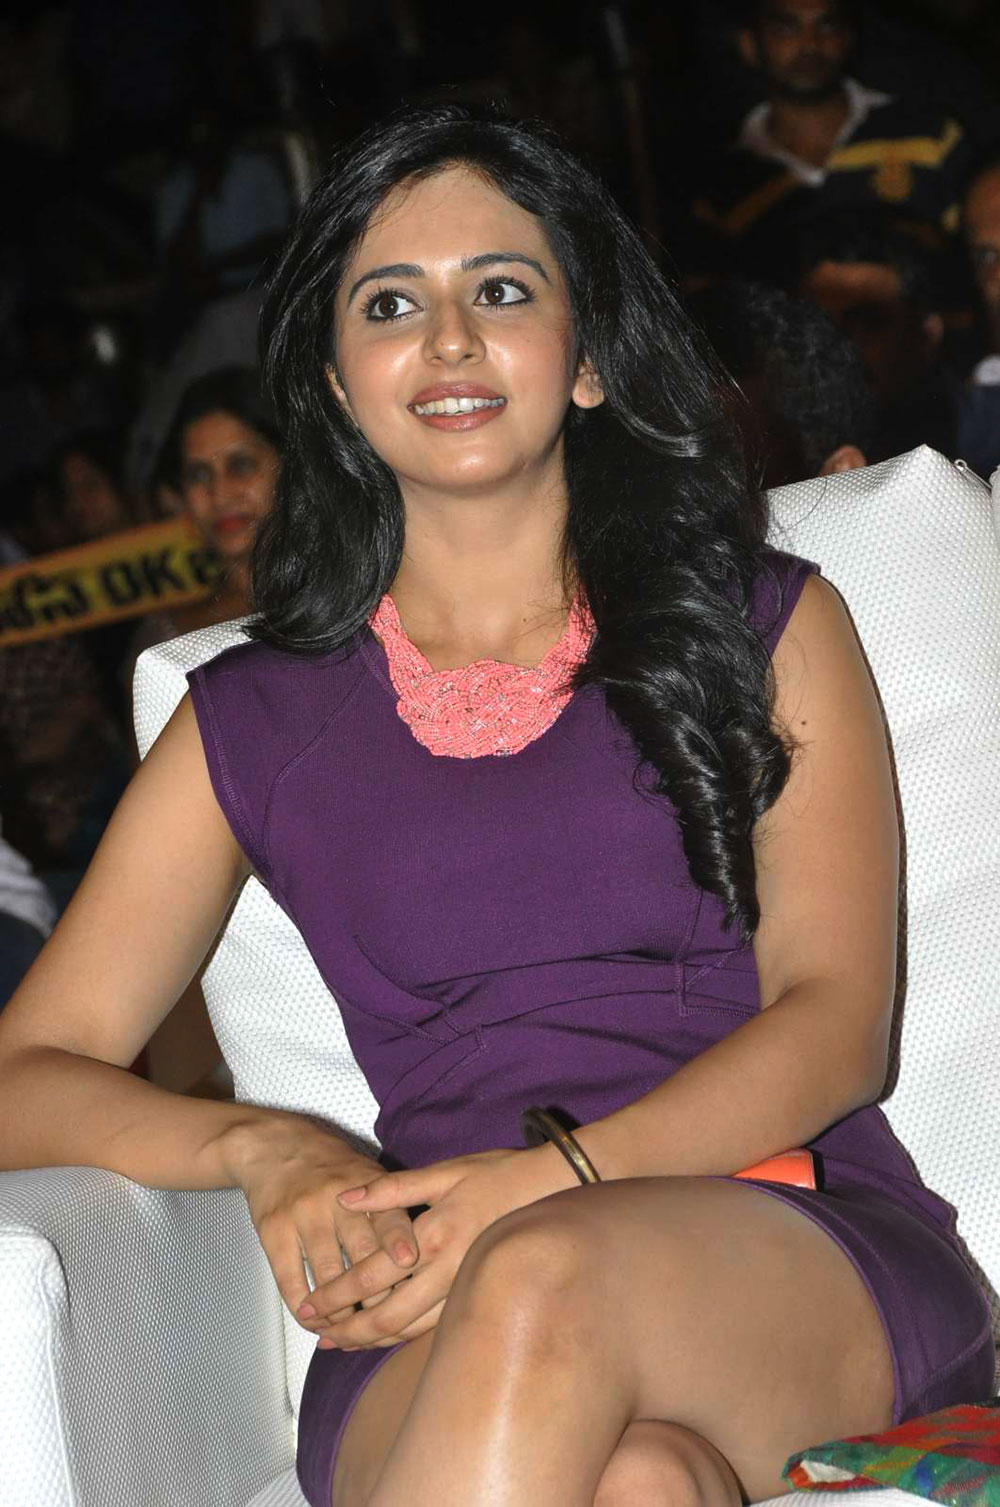 sexy diva Rakul preet singh latest hot photos gallery at hotal event